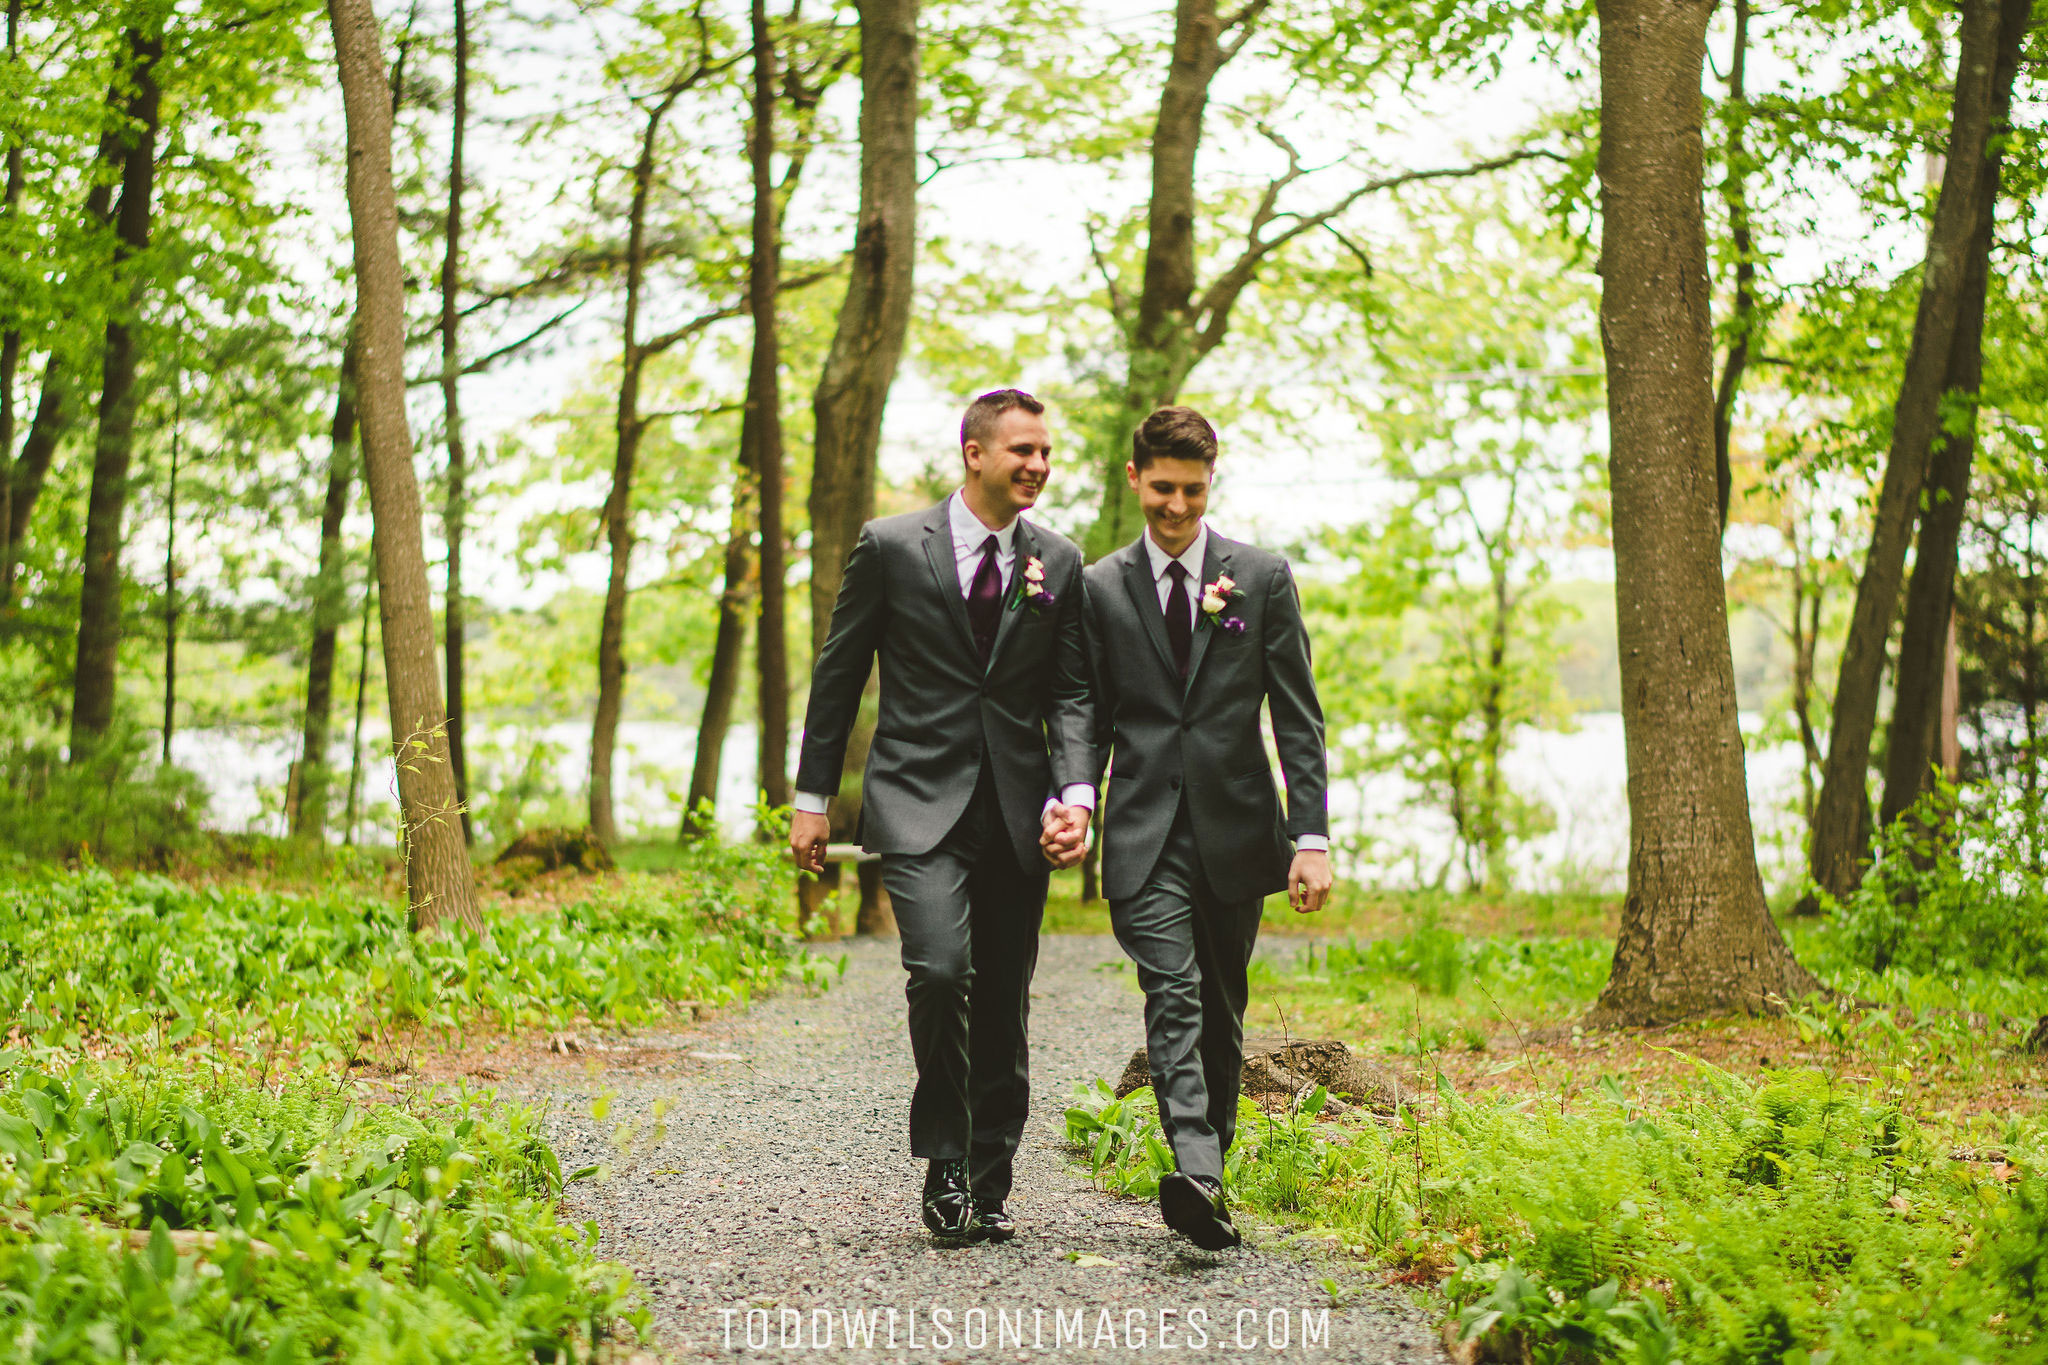 Photography | Stephen & Ryan walking in the woods